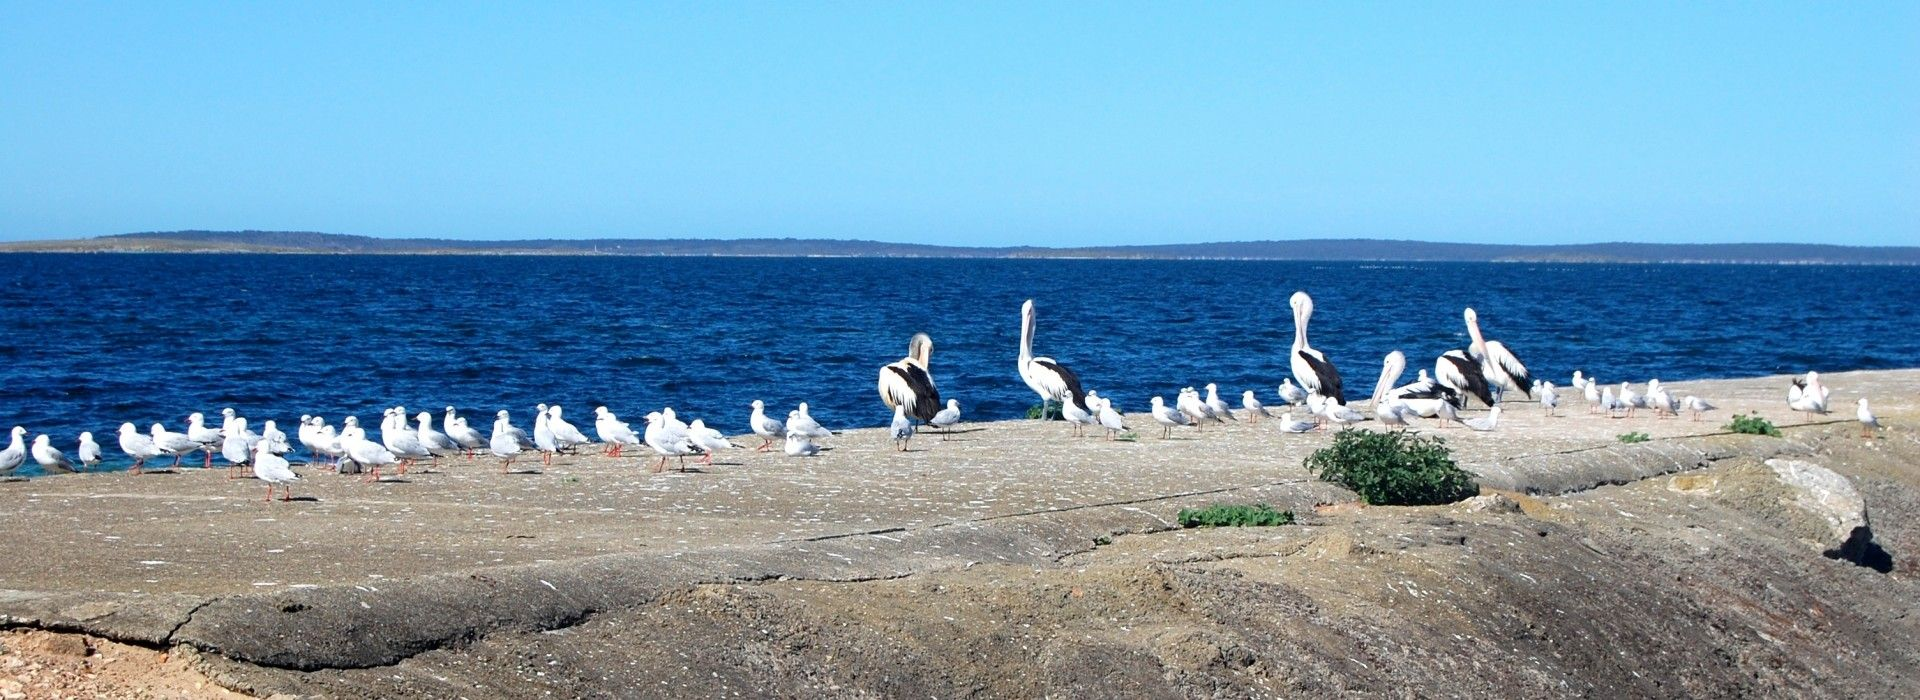 Eyre Peninsula is an oceanic paradise famous for its rich sea life, biodiversity and countless adventure opportunities.